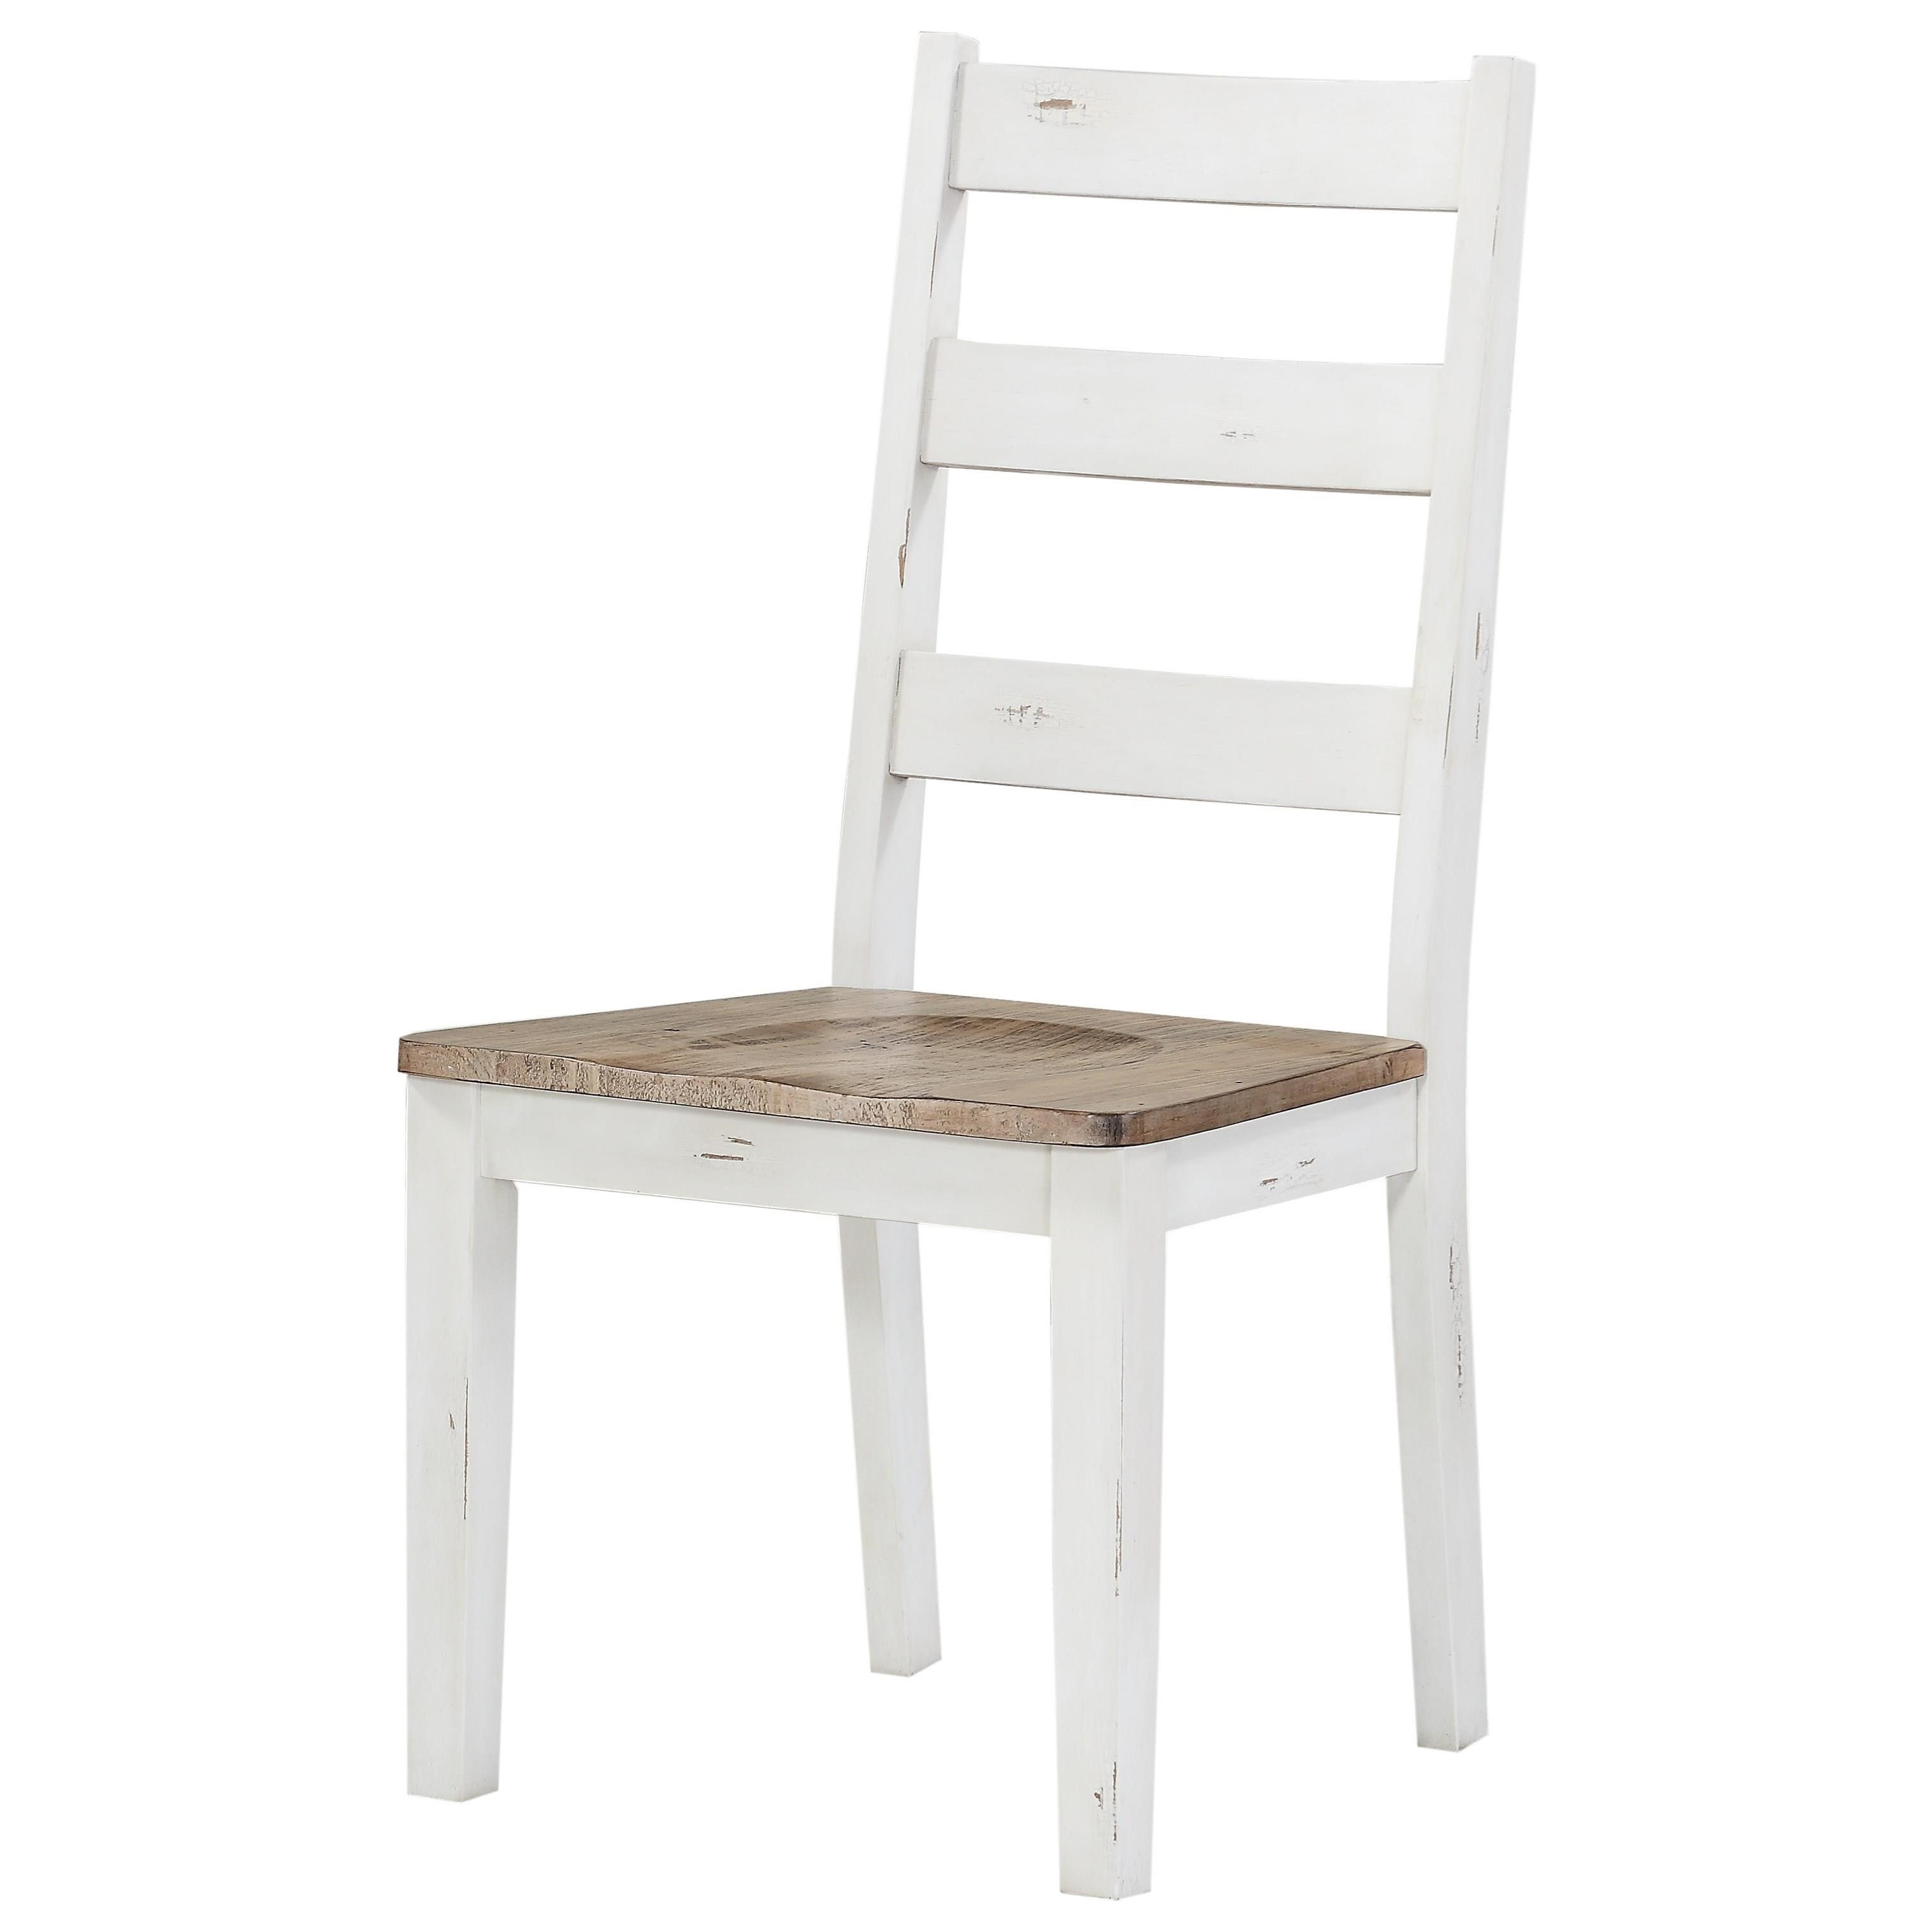 Abaco Ladderback Side Chair by Emerald at Northeast Factory Direct